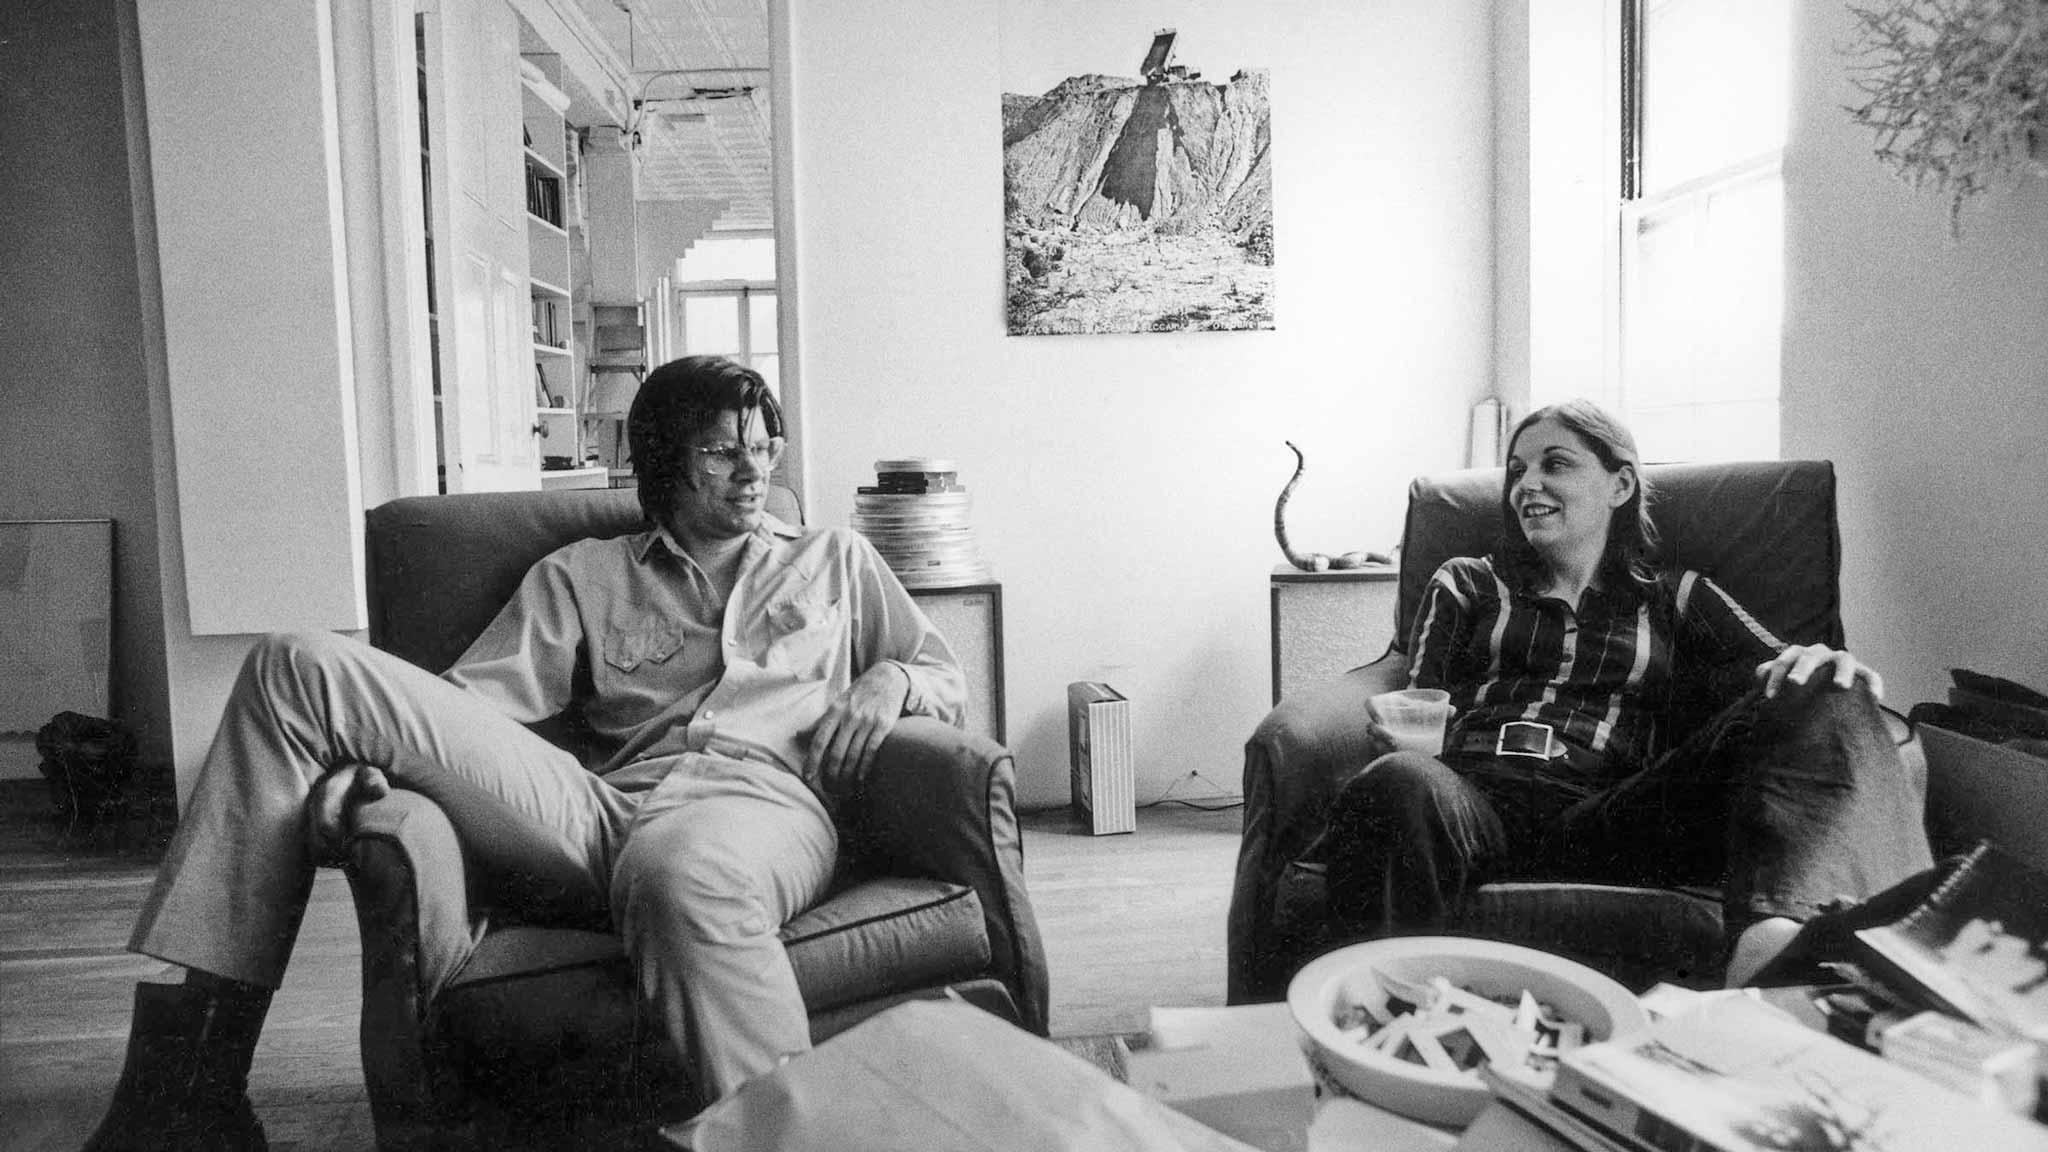 Black and white image of a man and woman seated next to each other in a living room